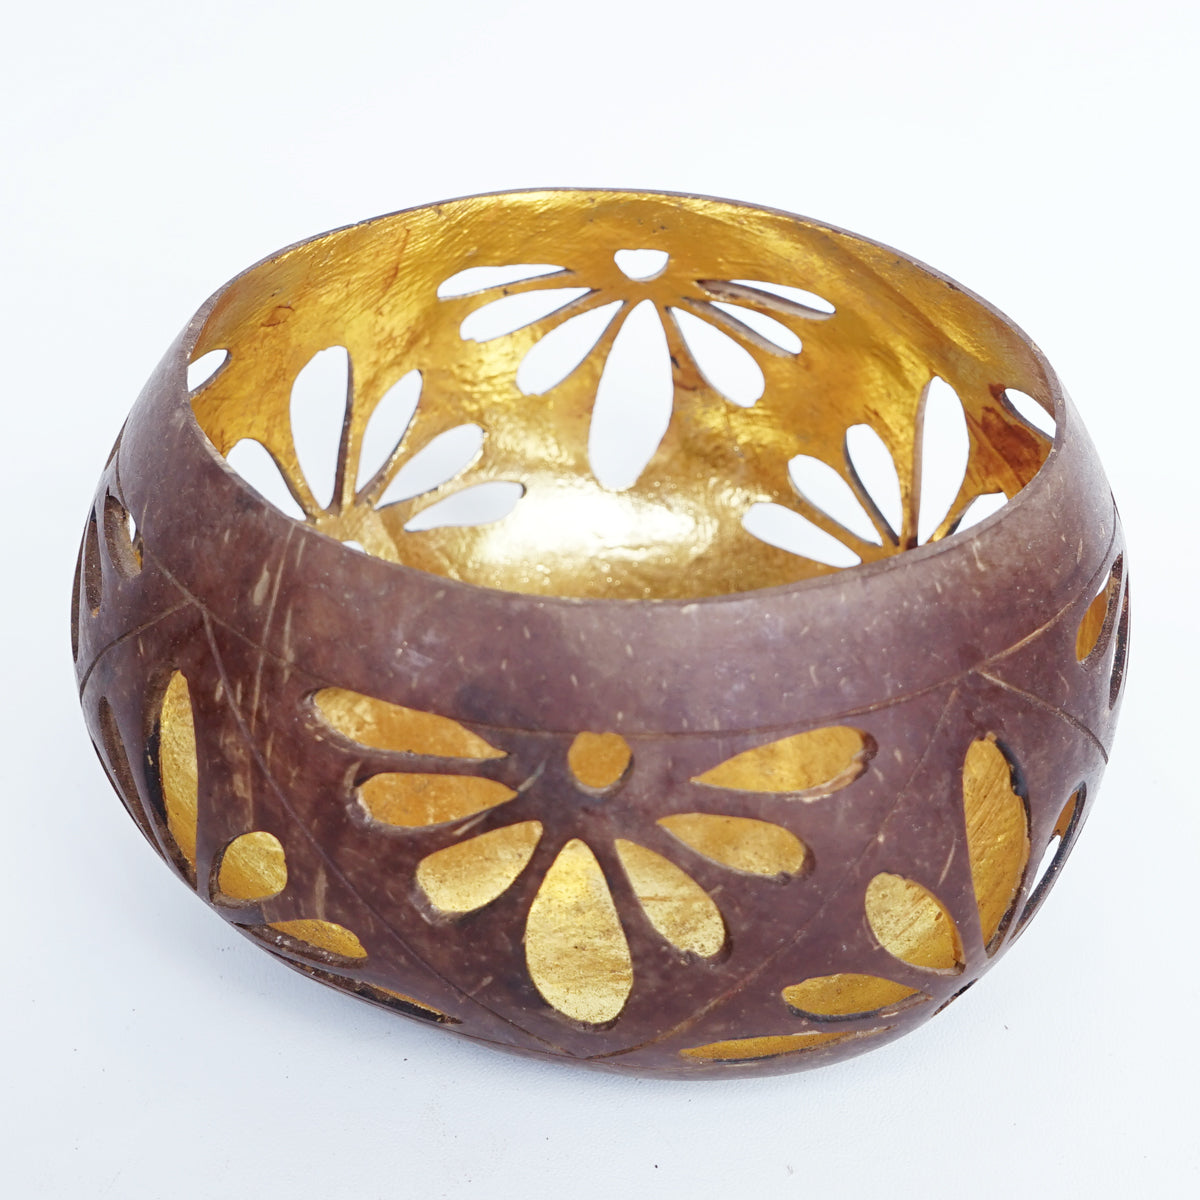 MULC031 COCONUT BOWL WITH GOLD INSIDE